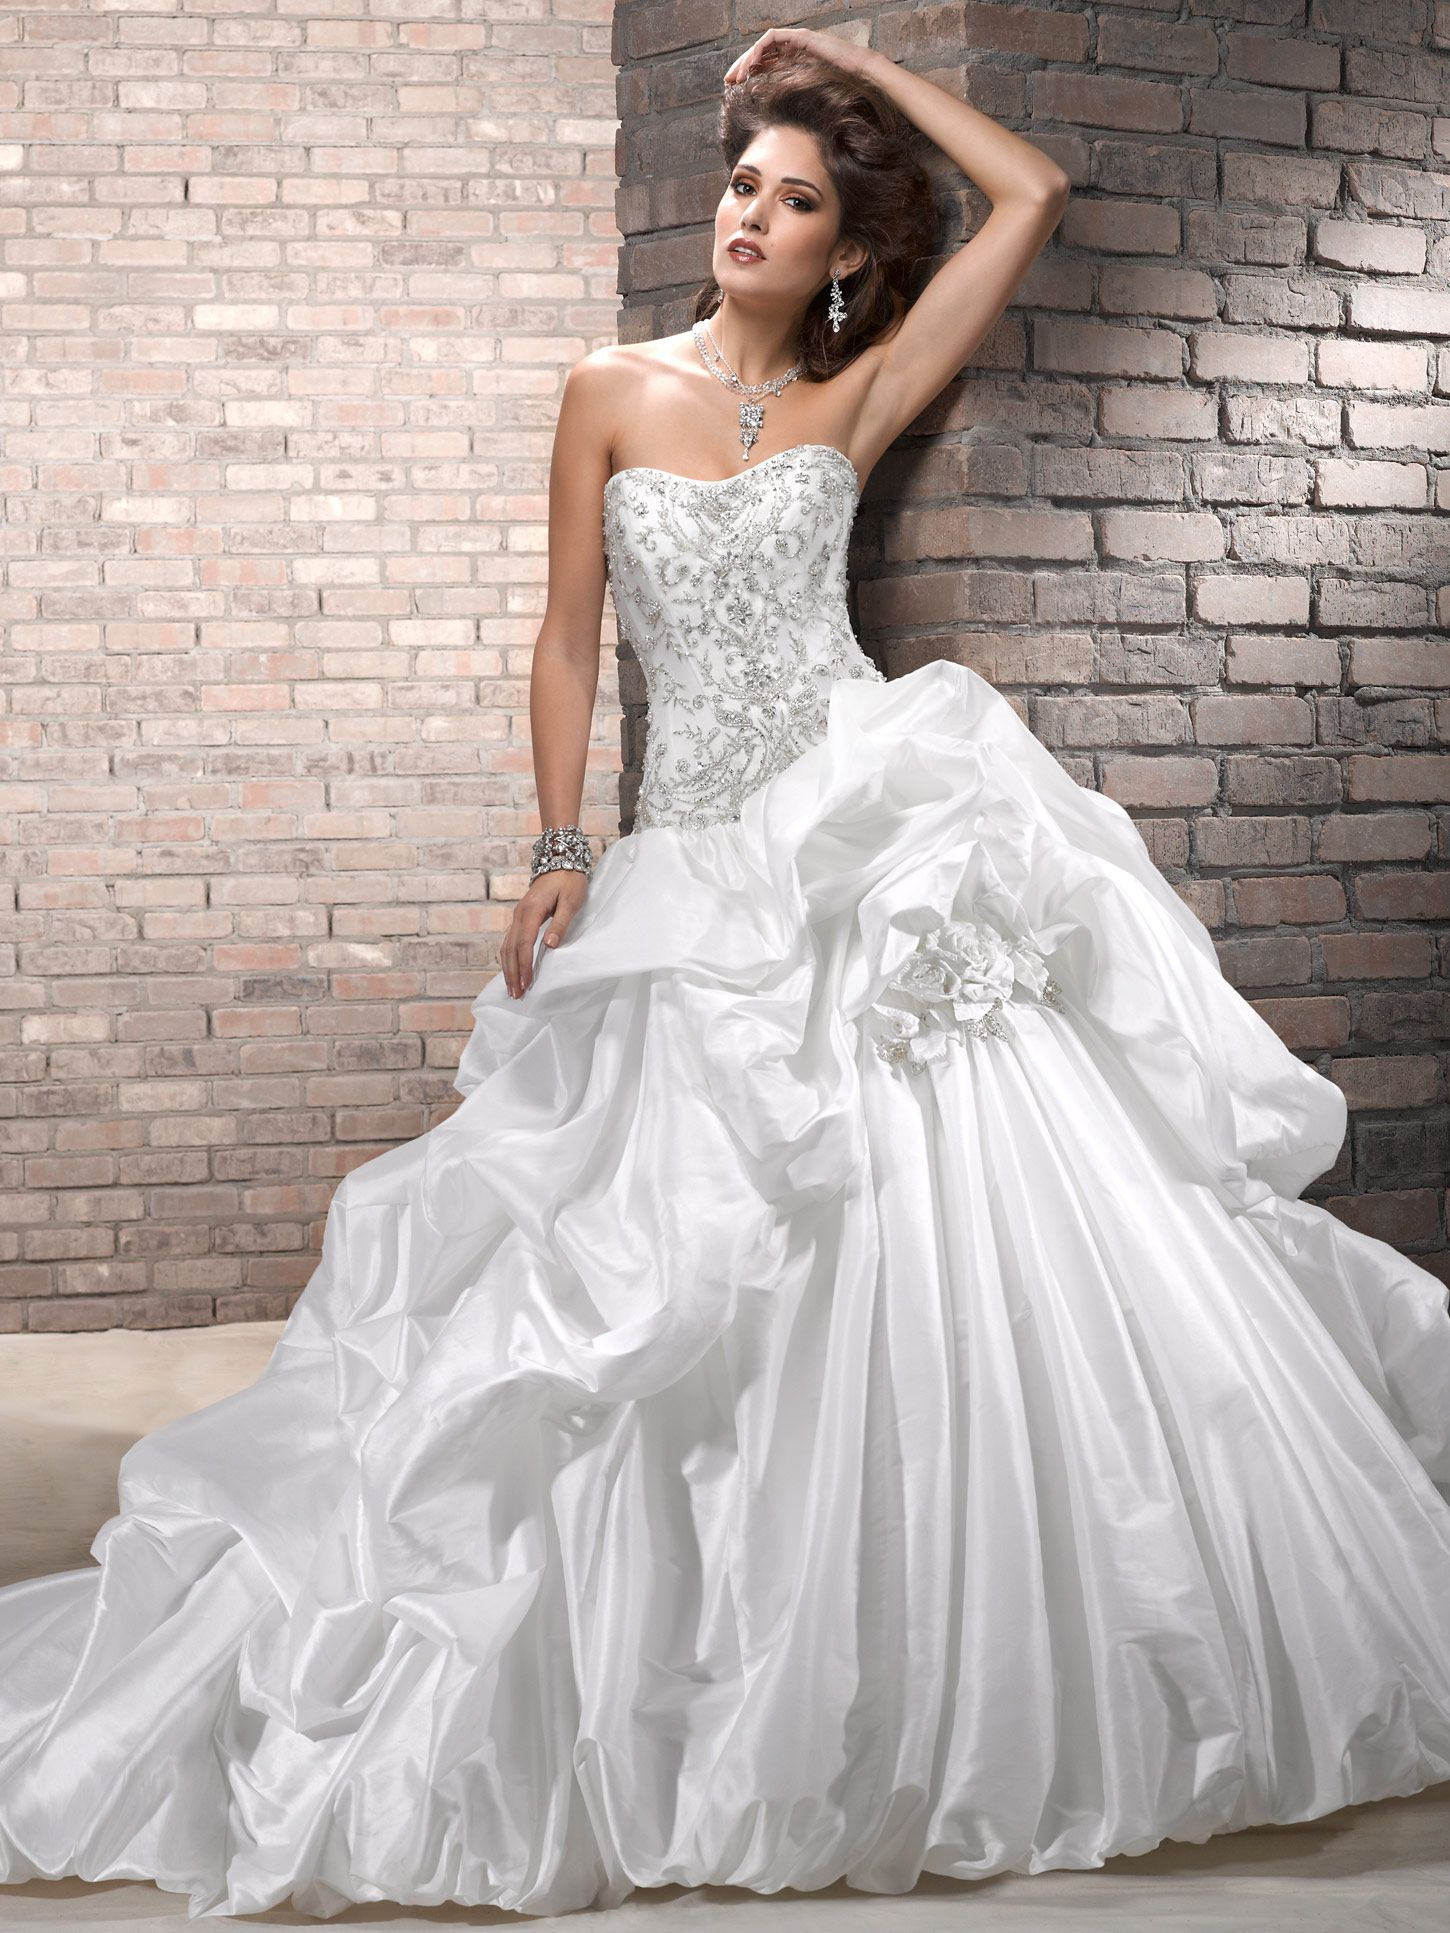 28 Most Elegant Looking Ball Gown Wedding Dresses | Ball gowns ...